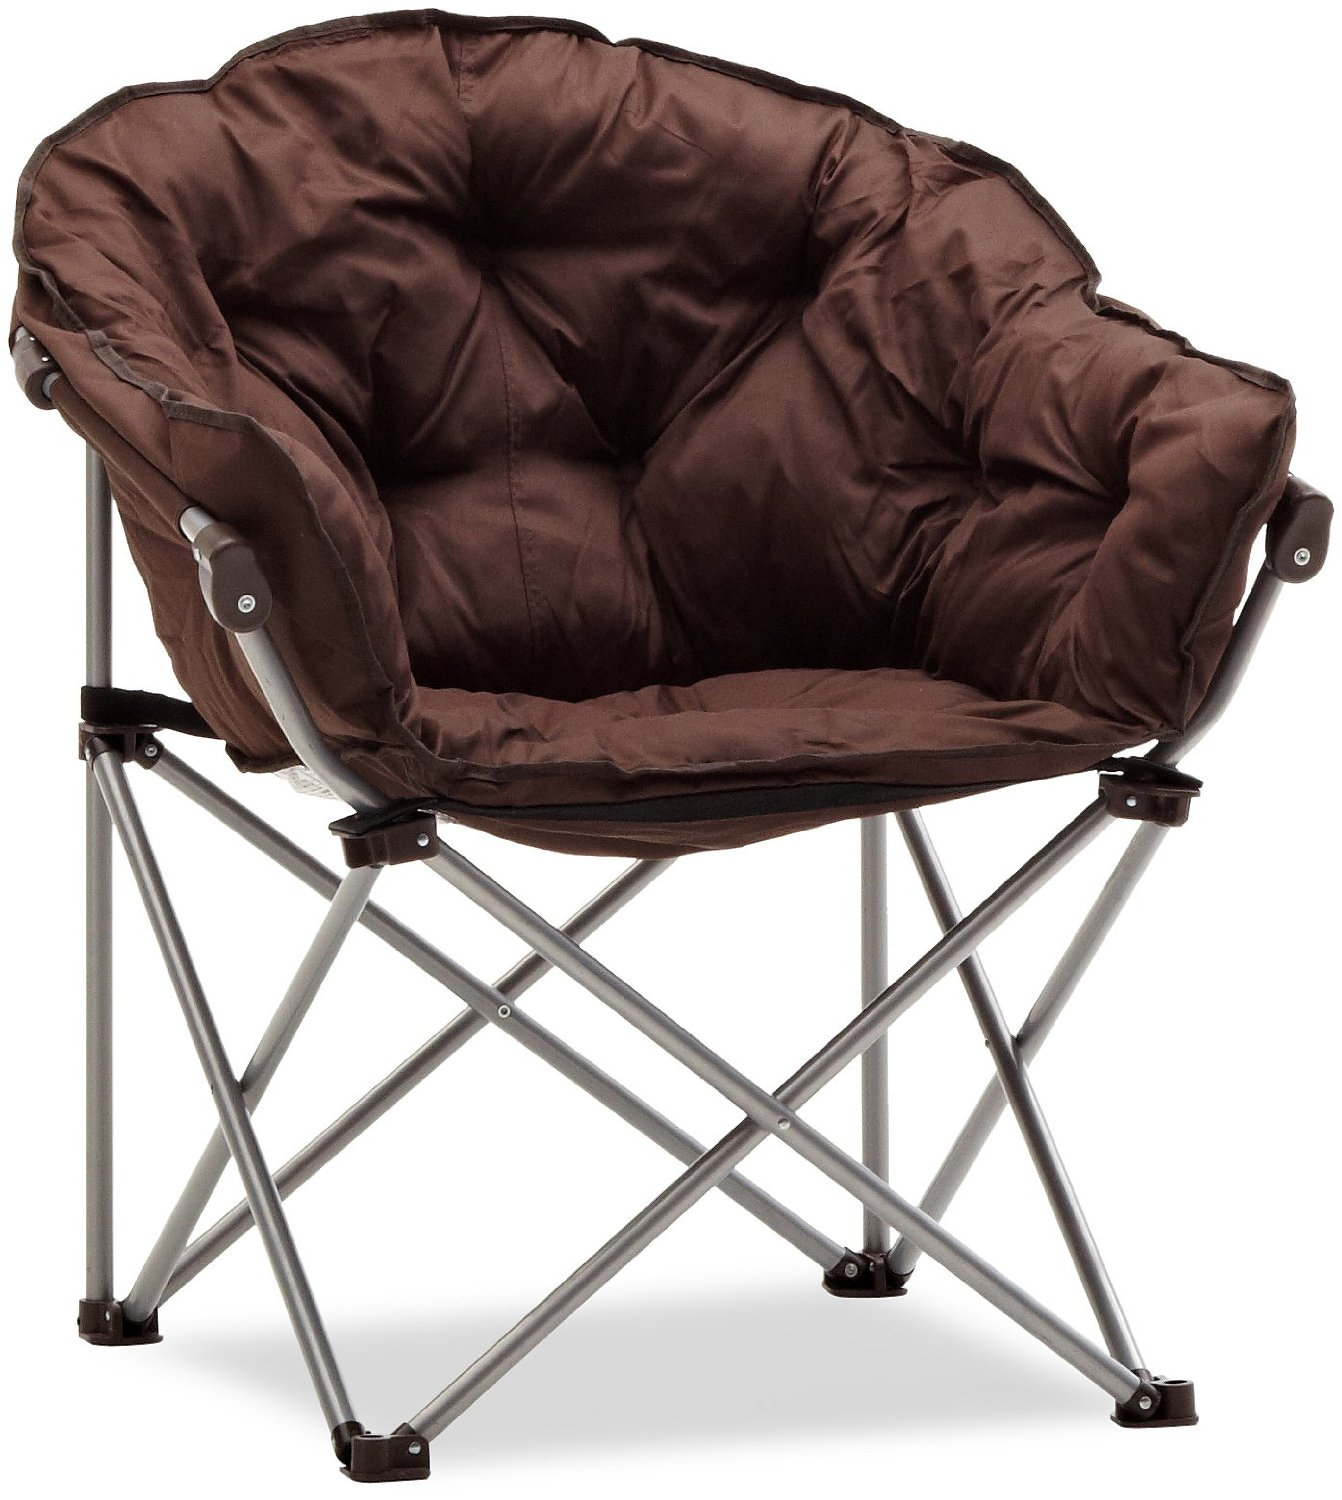 brown comfortable folding chairs with stainless steel material for unique  furniture design ydmqinp